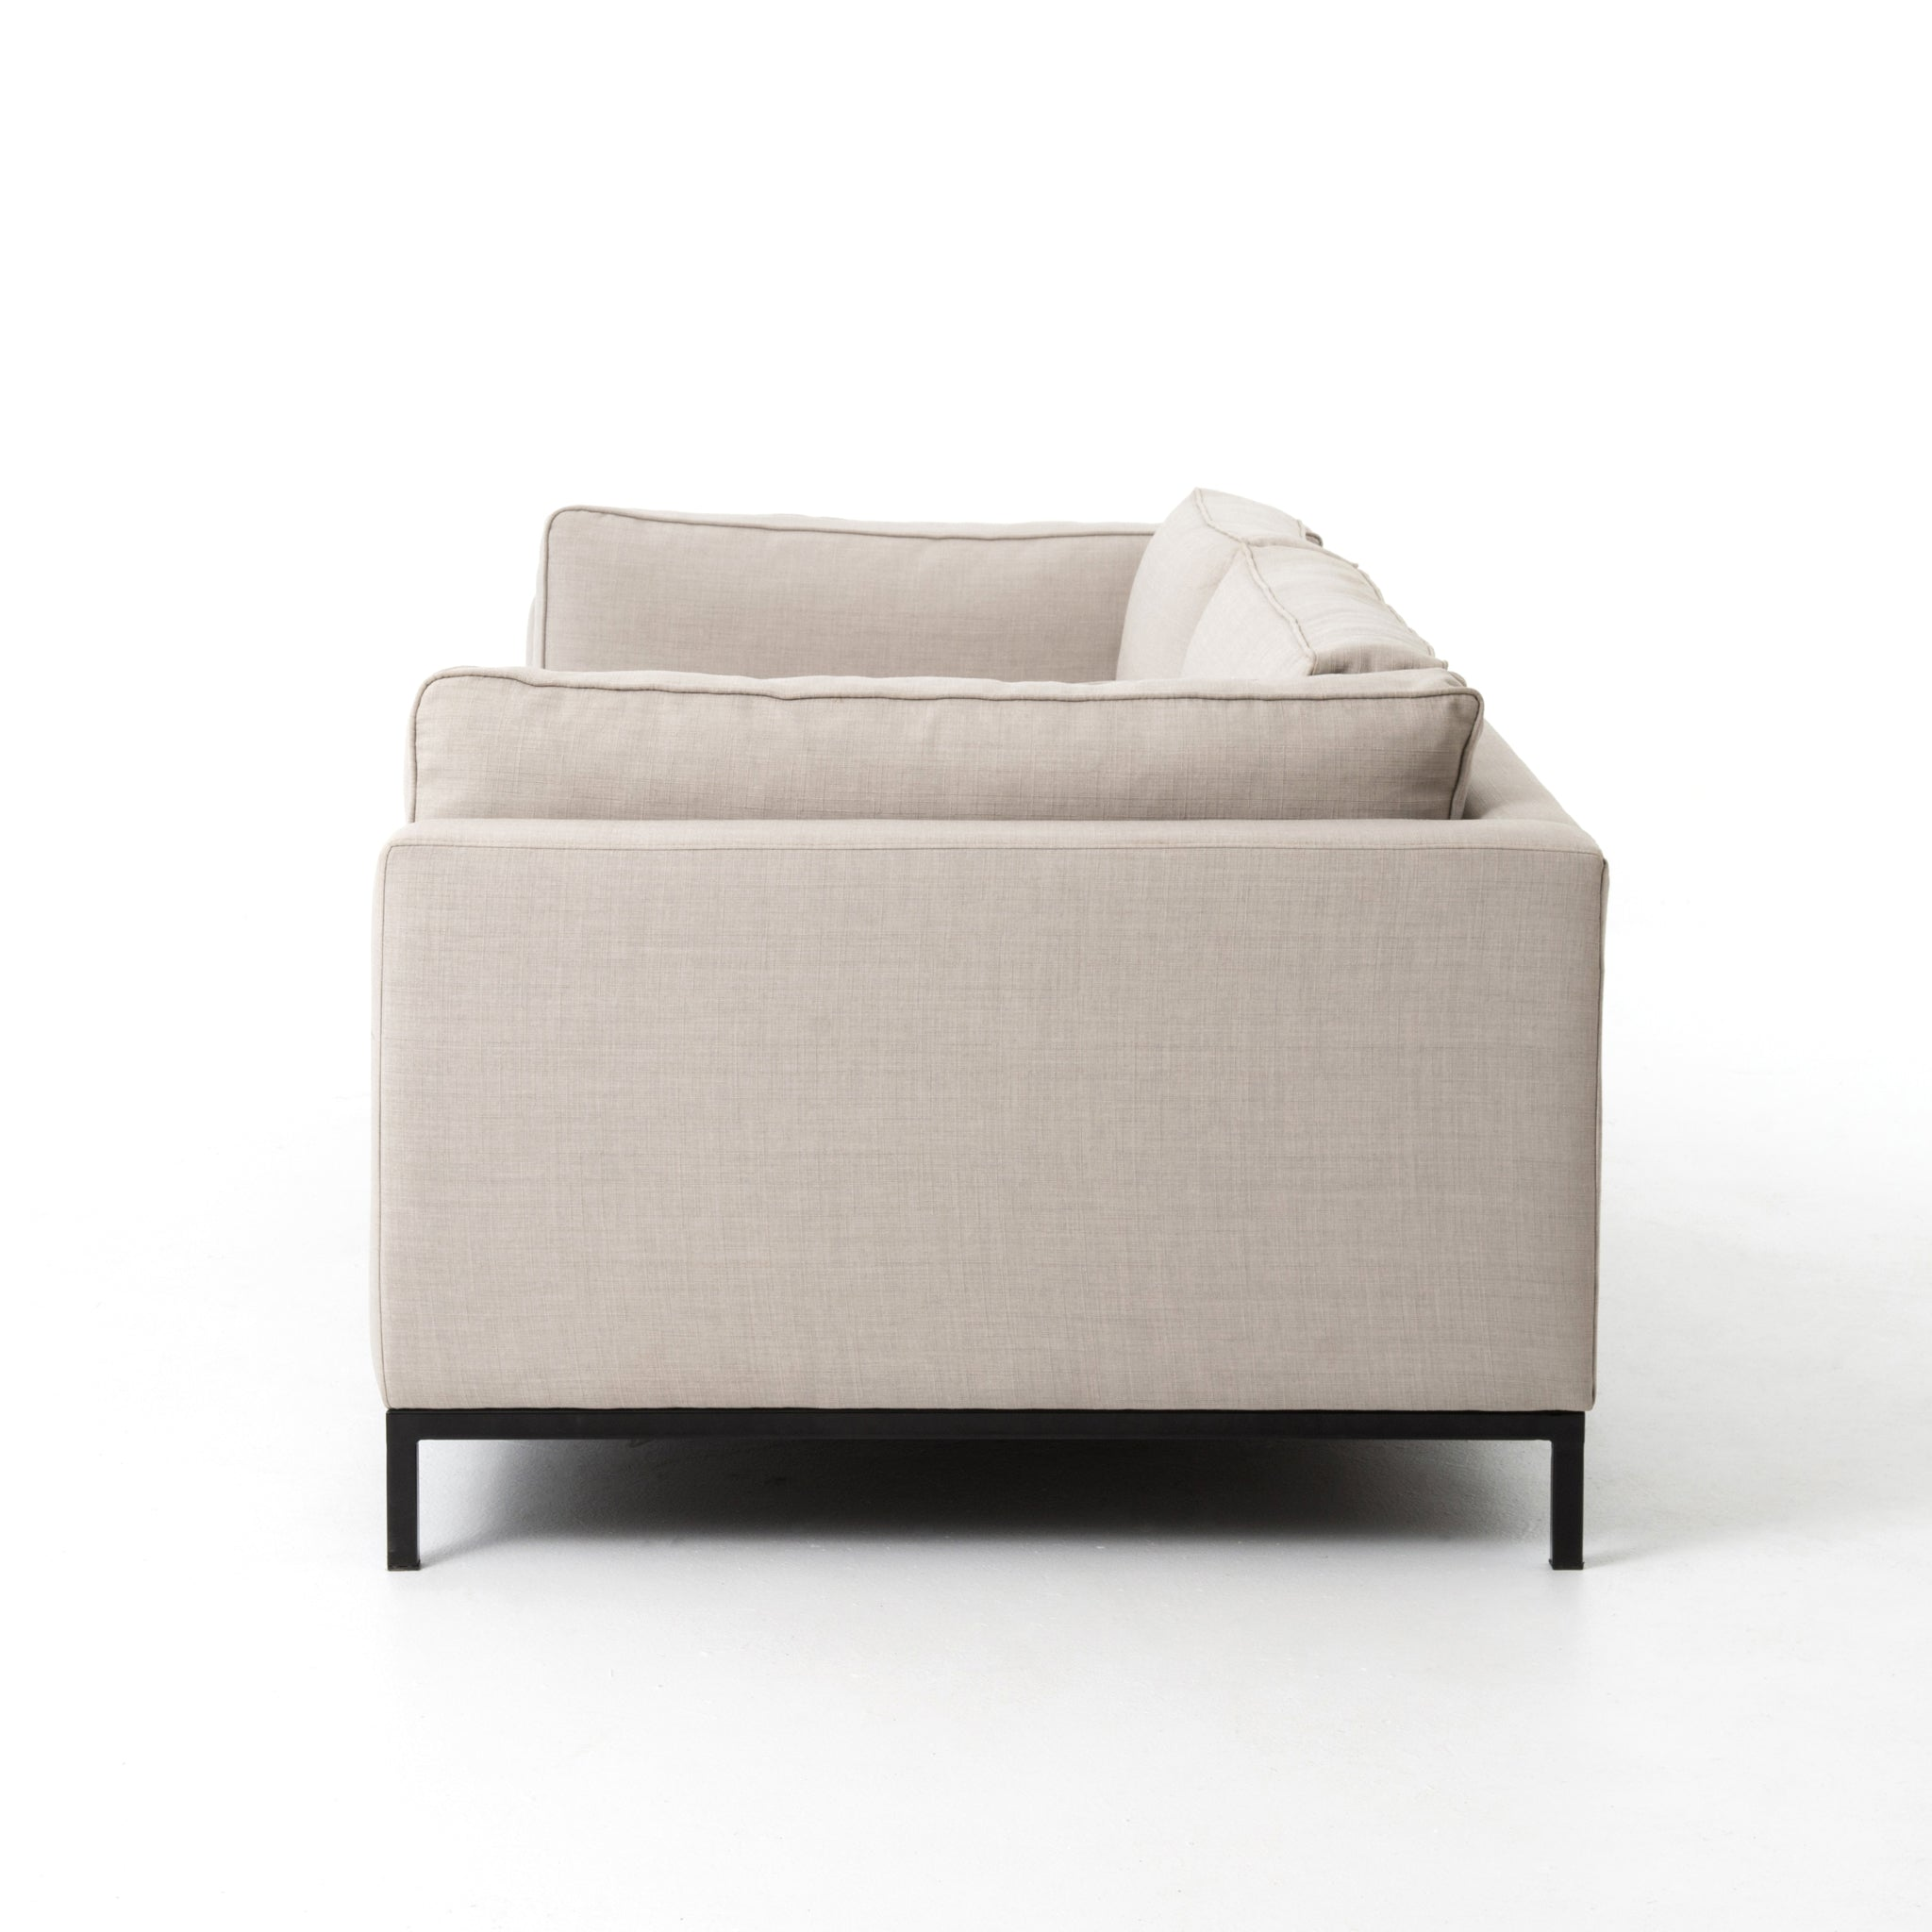 Clean Simple Lines Sofa Bennett Moon - Furniture on Main